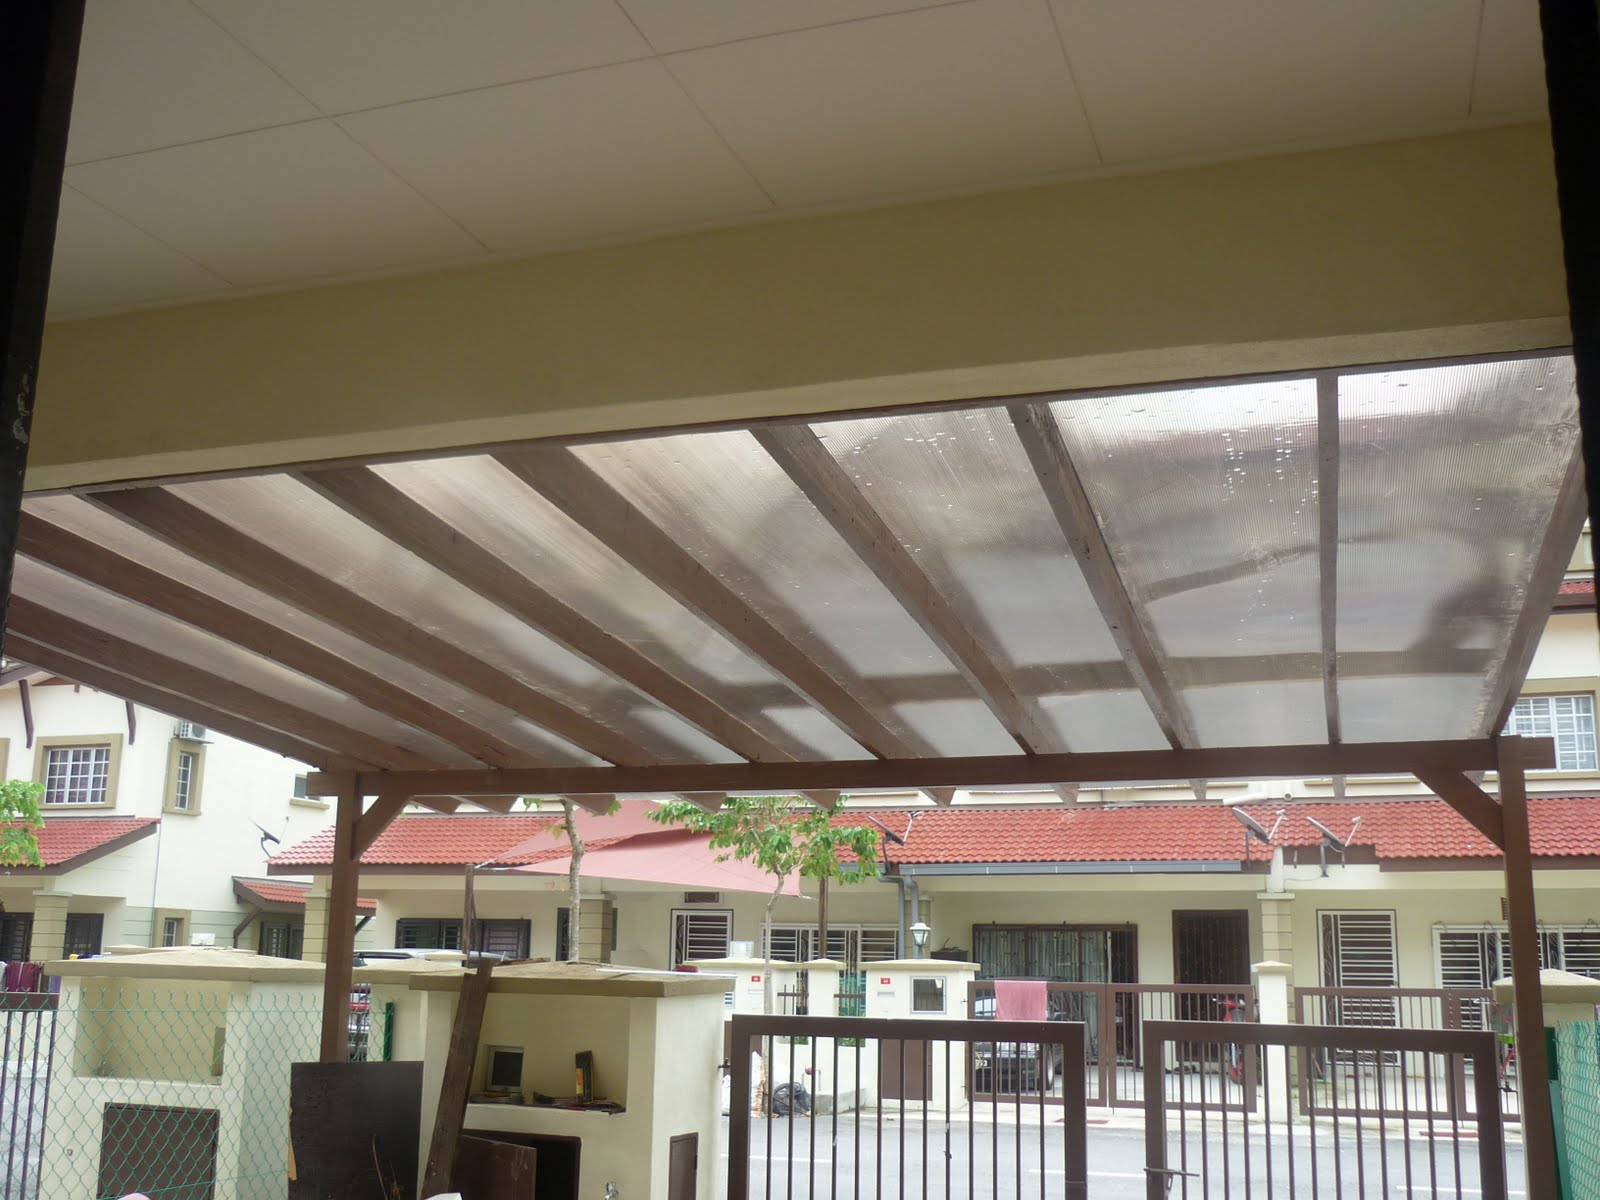 INDAH CAHAYA ENTERPRISE Renovation Plaster Ceiling Pergola Roof Kitchen